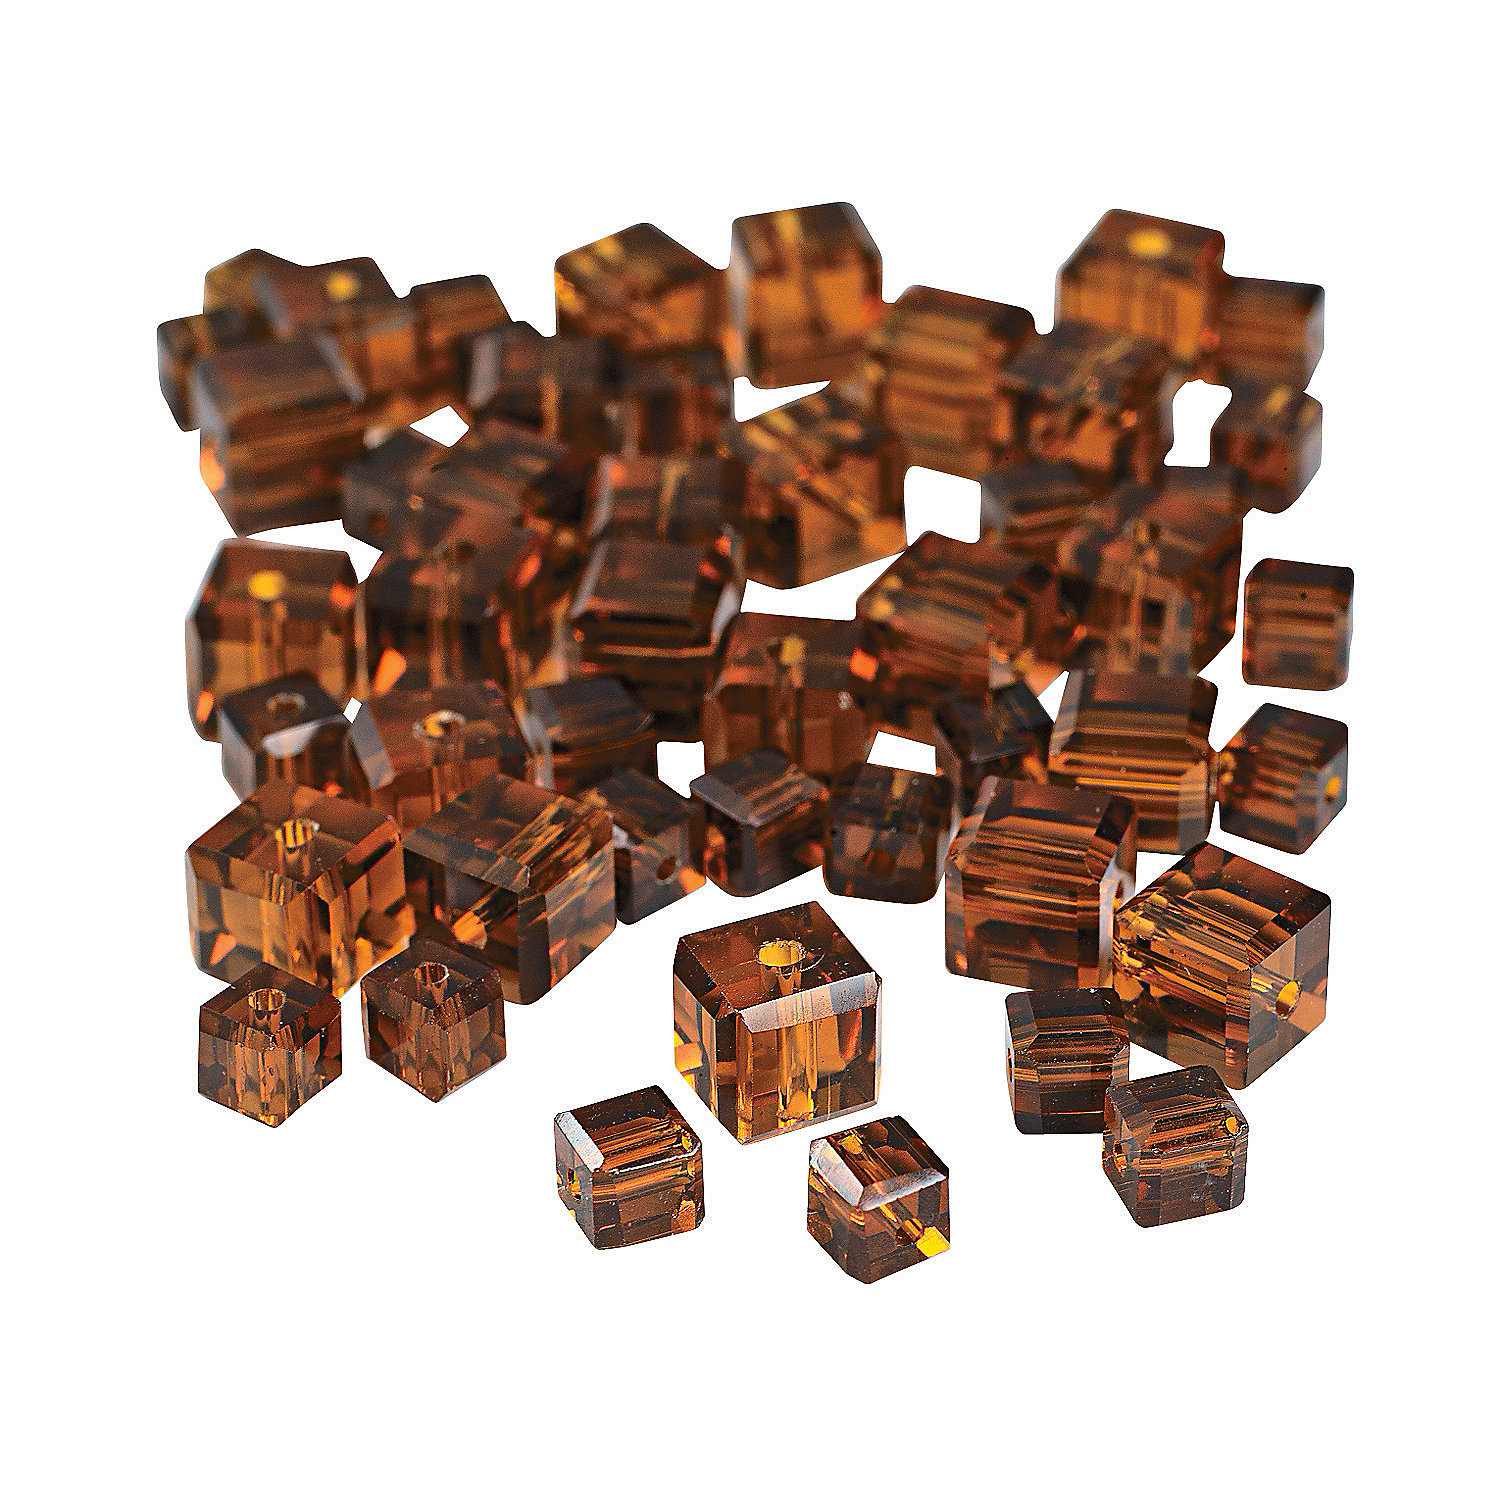 IN-68/26710 Chocolate Brown Cube Cut Crystal Beads - 4mm-6mm 48 Piece(s)